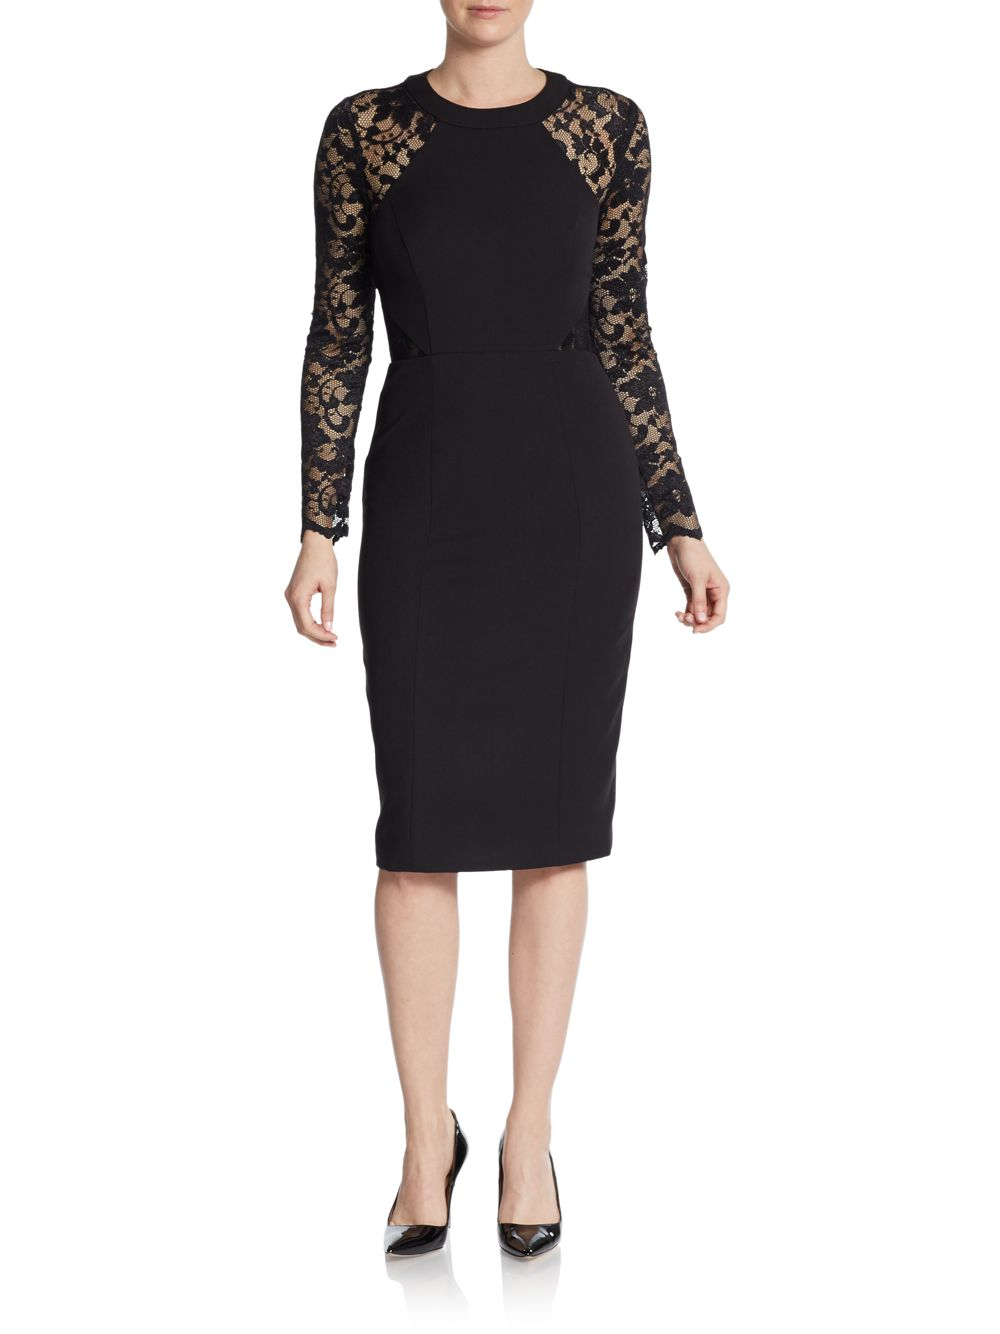 Vince camuto Lace Long-Sleeve Sheath Dress in Black | Lyst